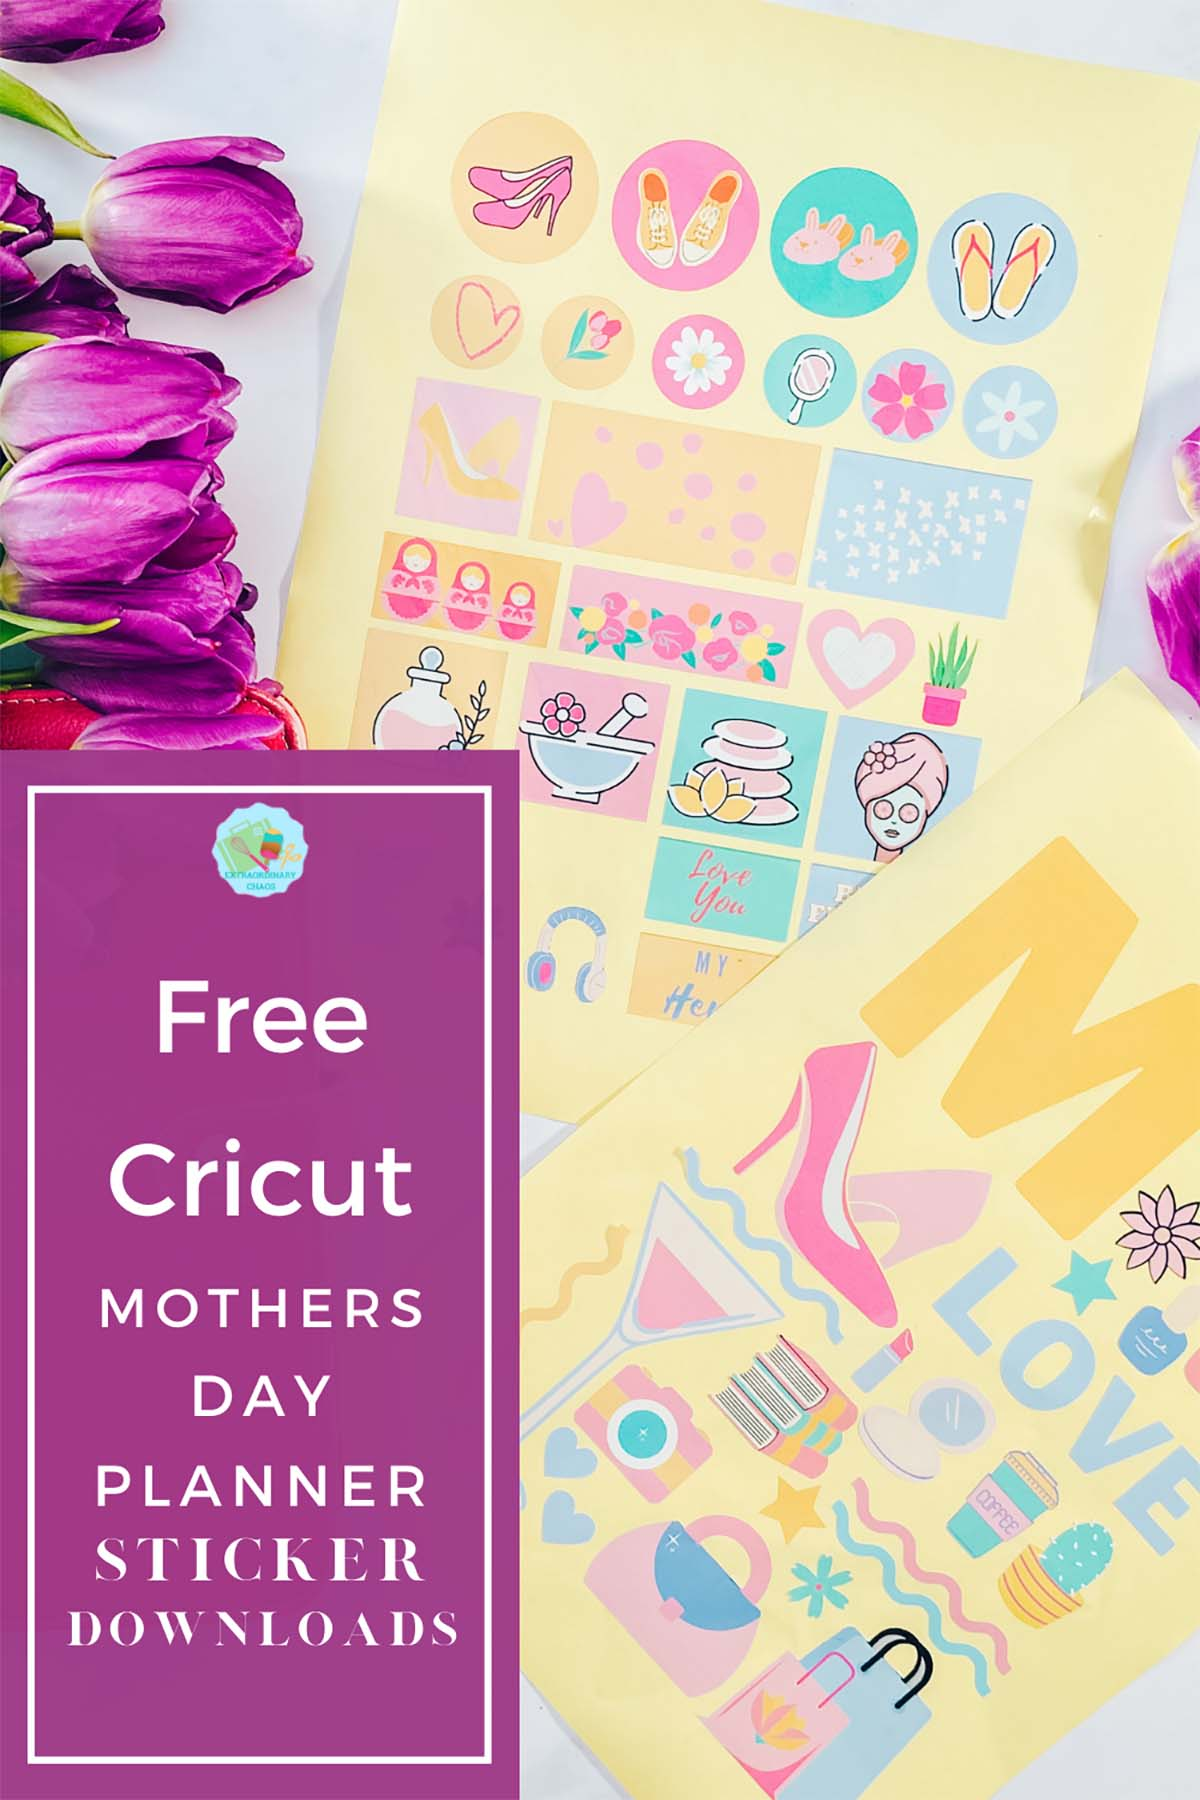 Free download for a Cricut Mothers Day Planner and bullet journal Stickers